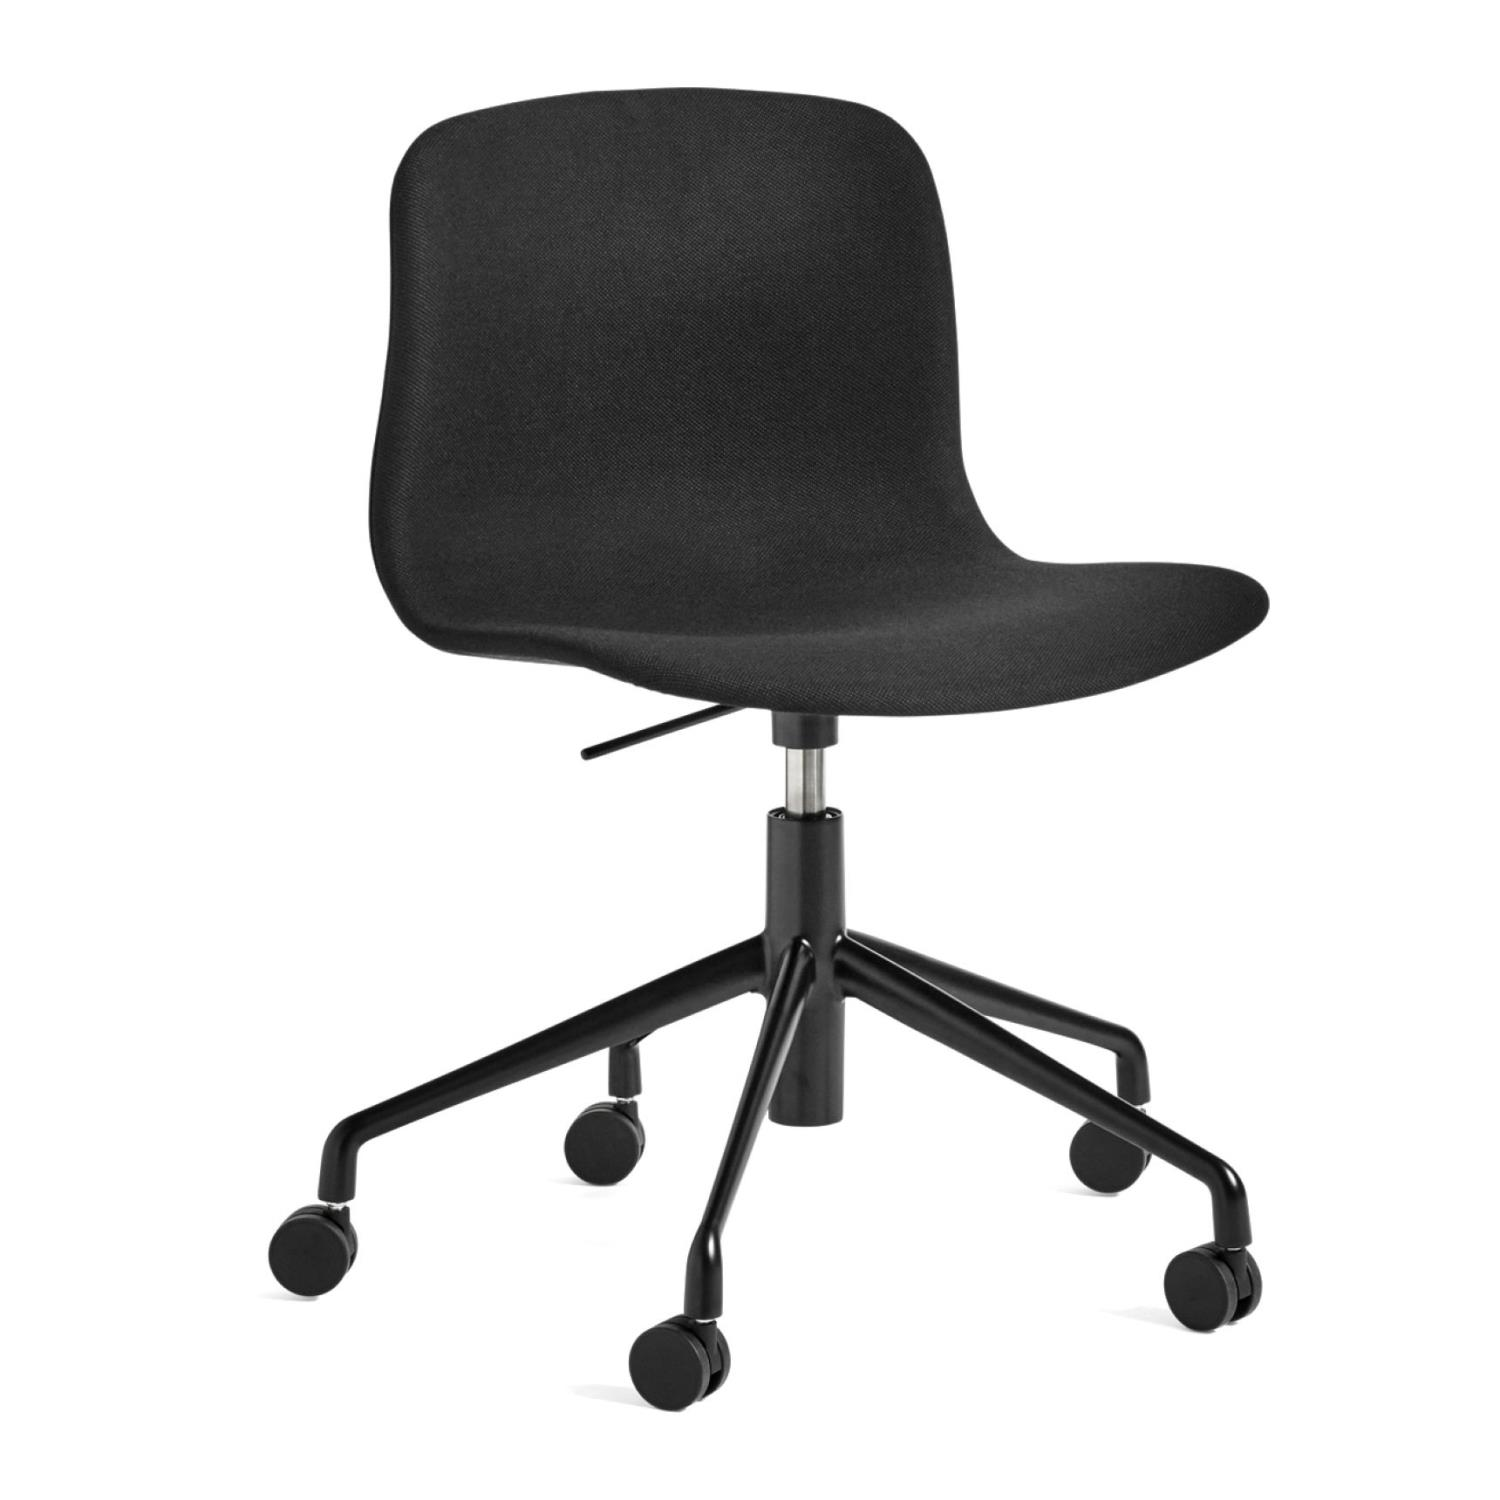 AAC 51 | About A Chair | Swivel Base | Fullpolstret